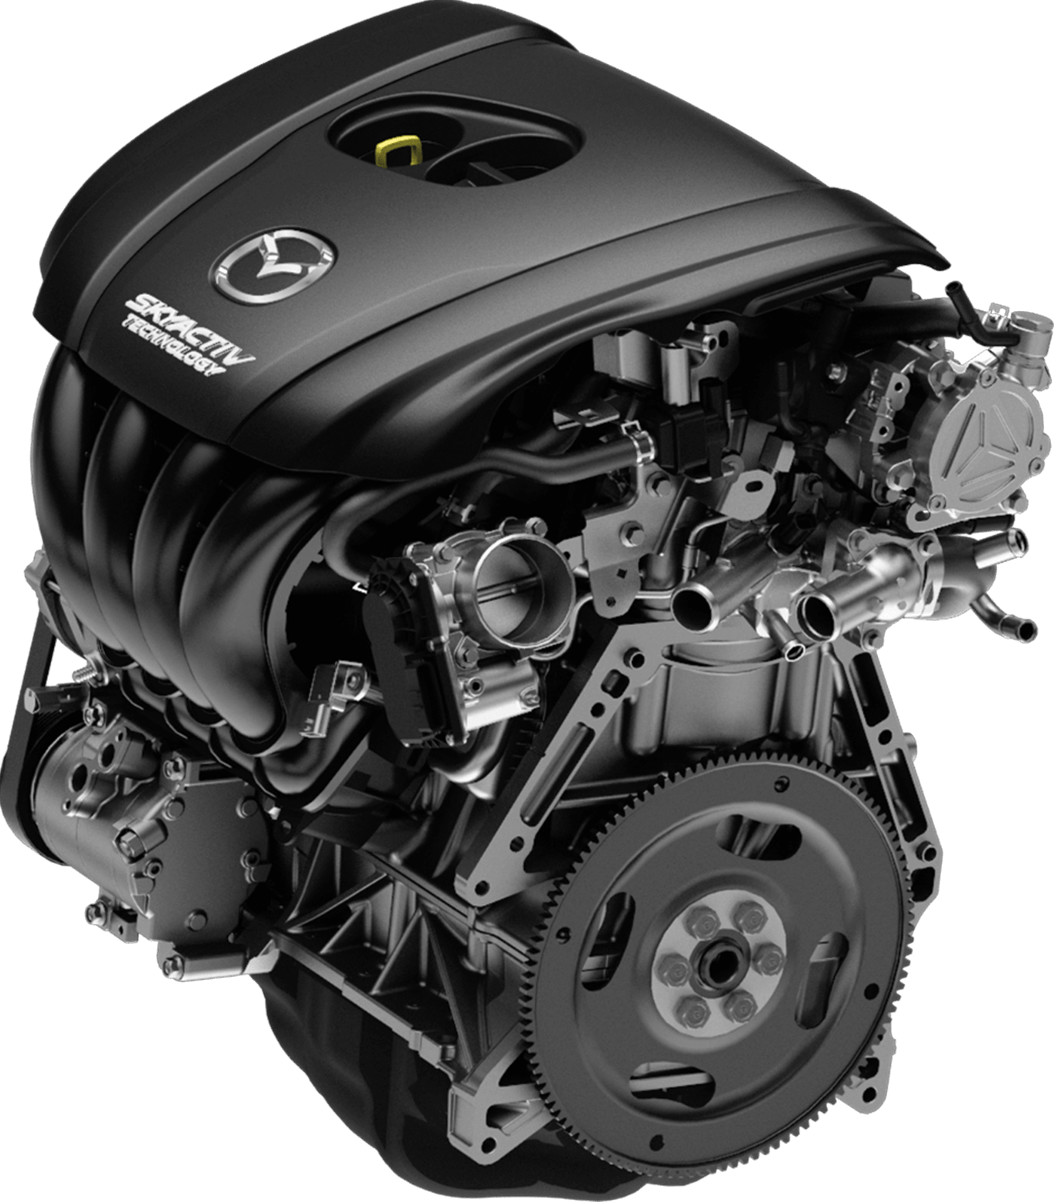 Powerful SKYACTIV Technology!